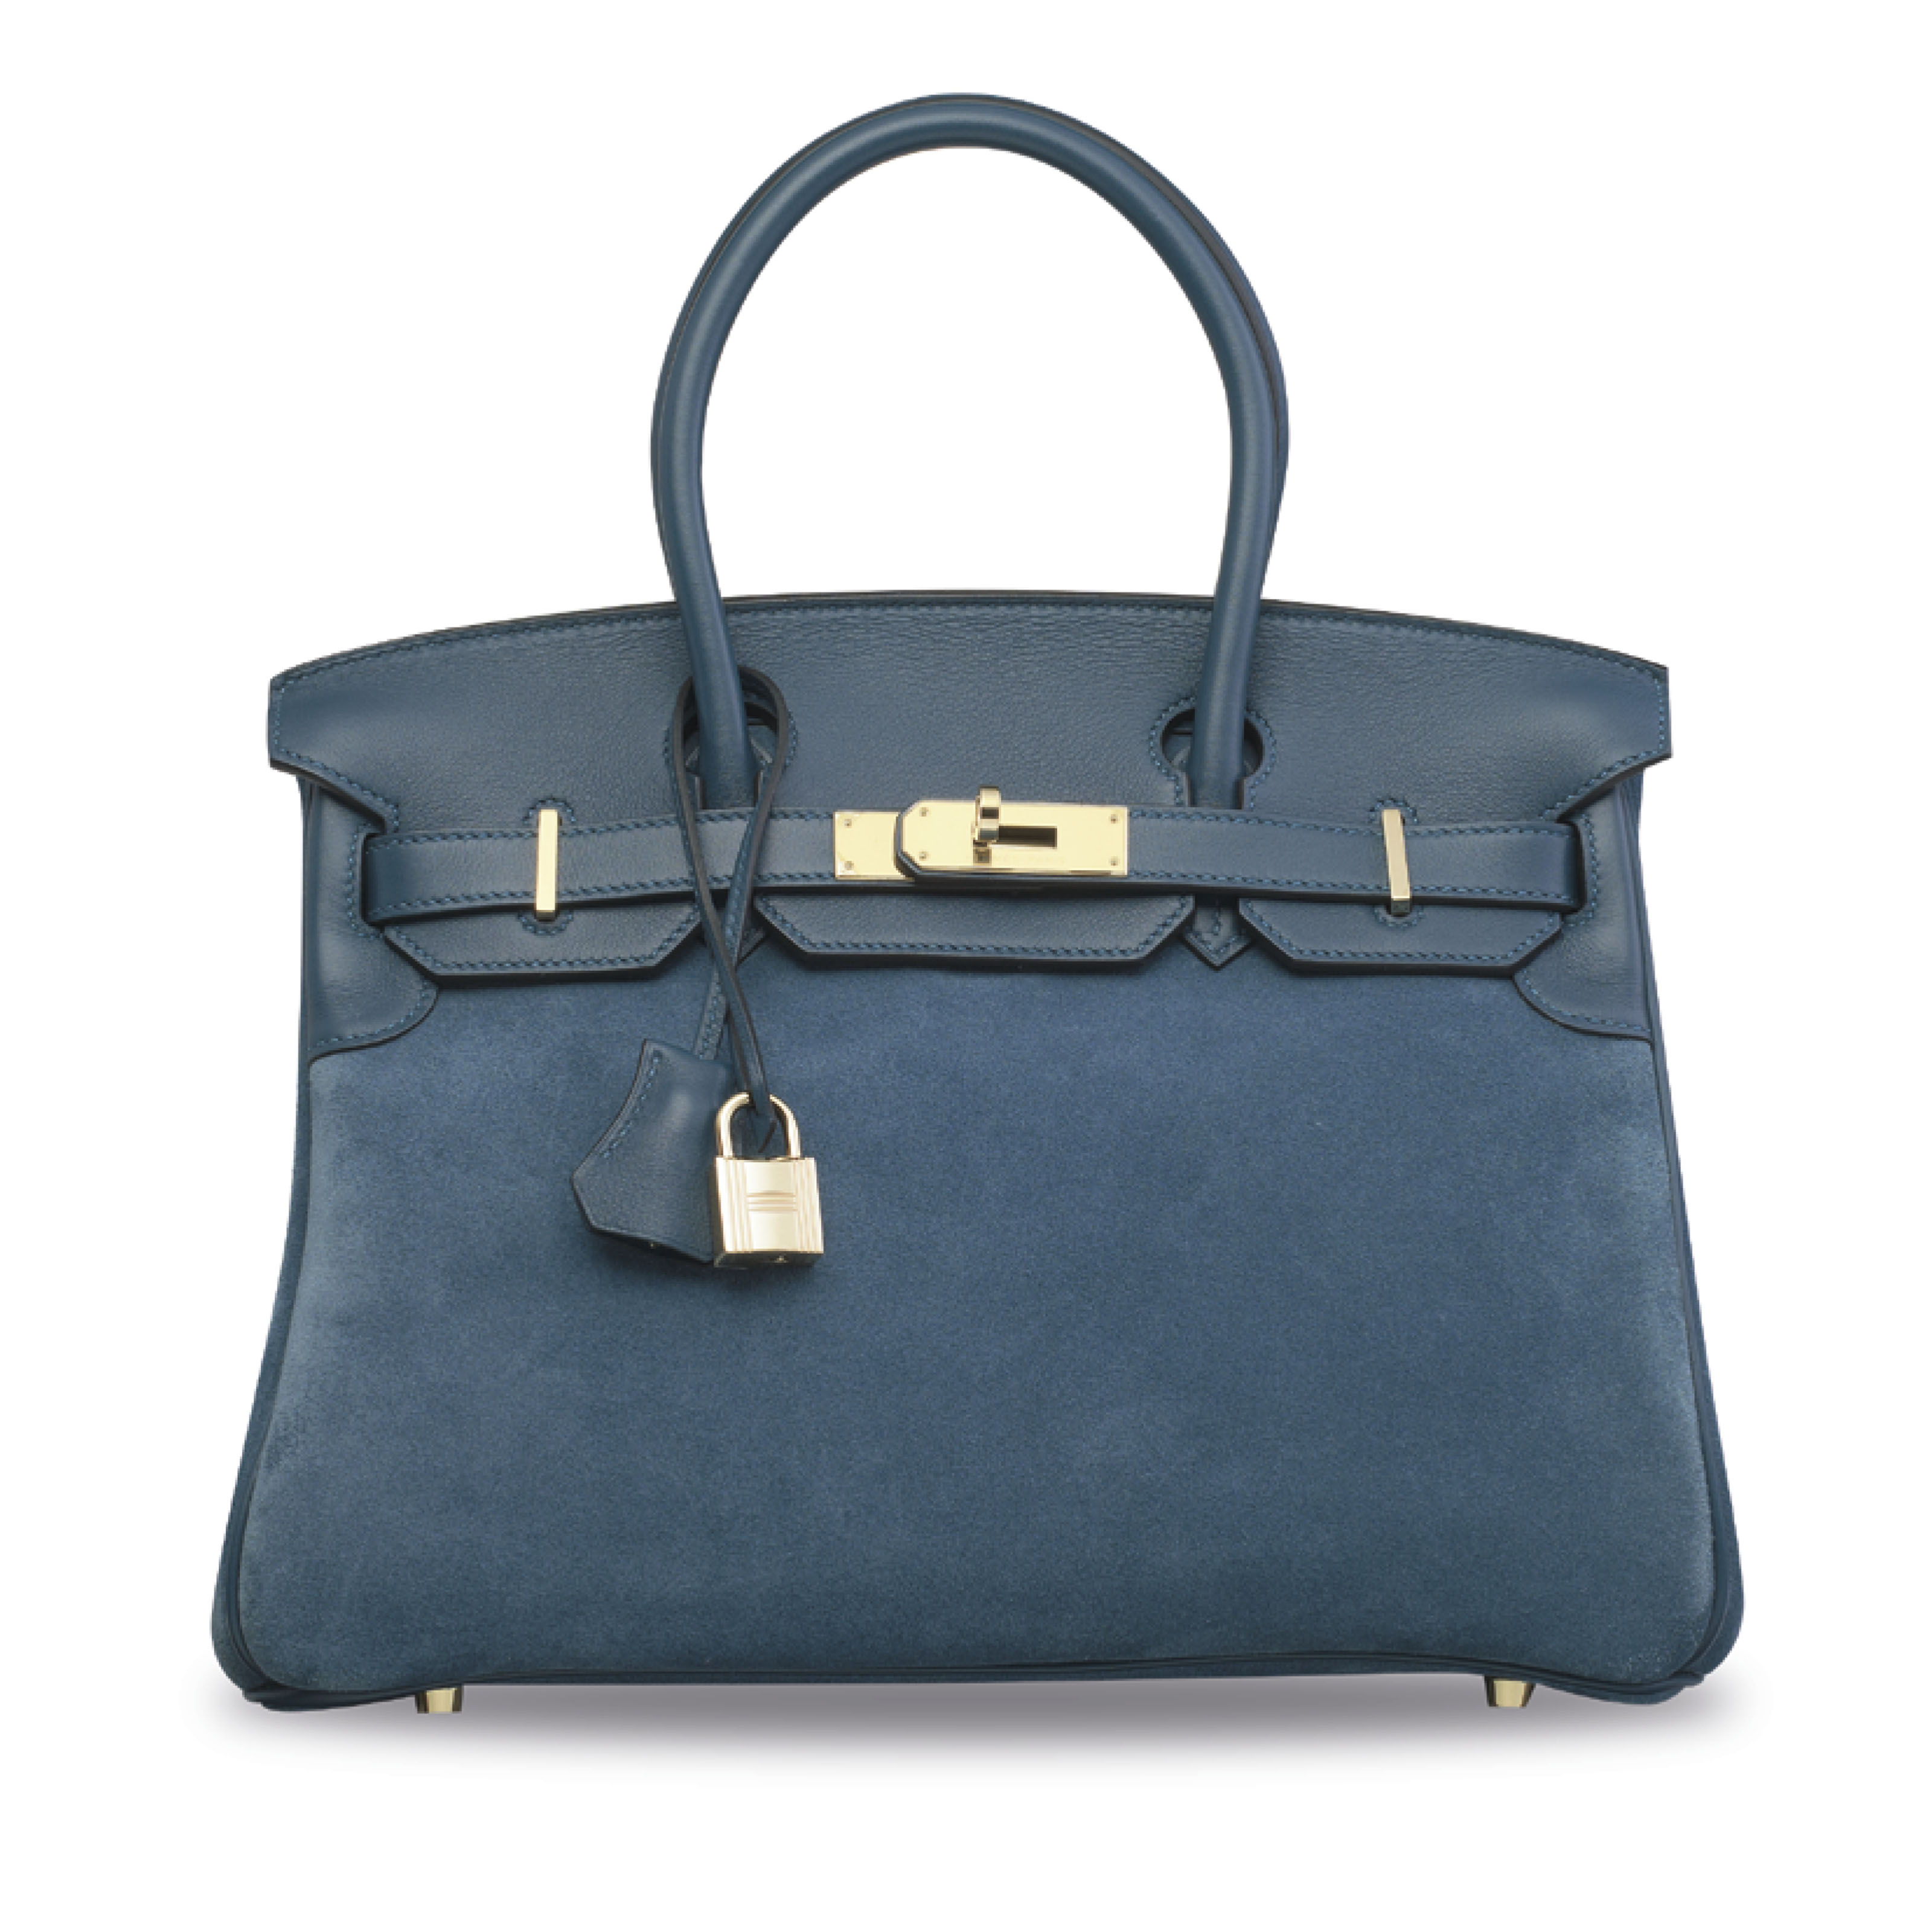 A LIMITED EDITION BLEU THALASSA GRIZZLY BIRKIN 30 WITH PERMABRASS HARDWARE